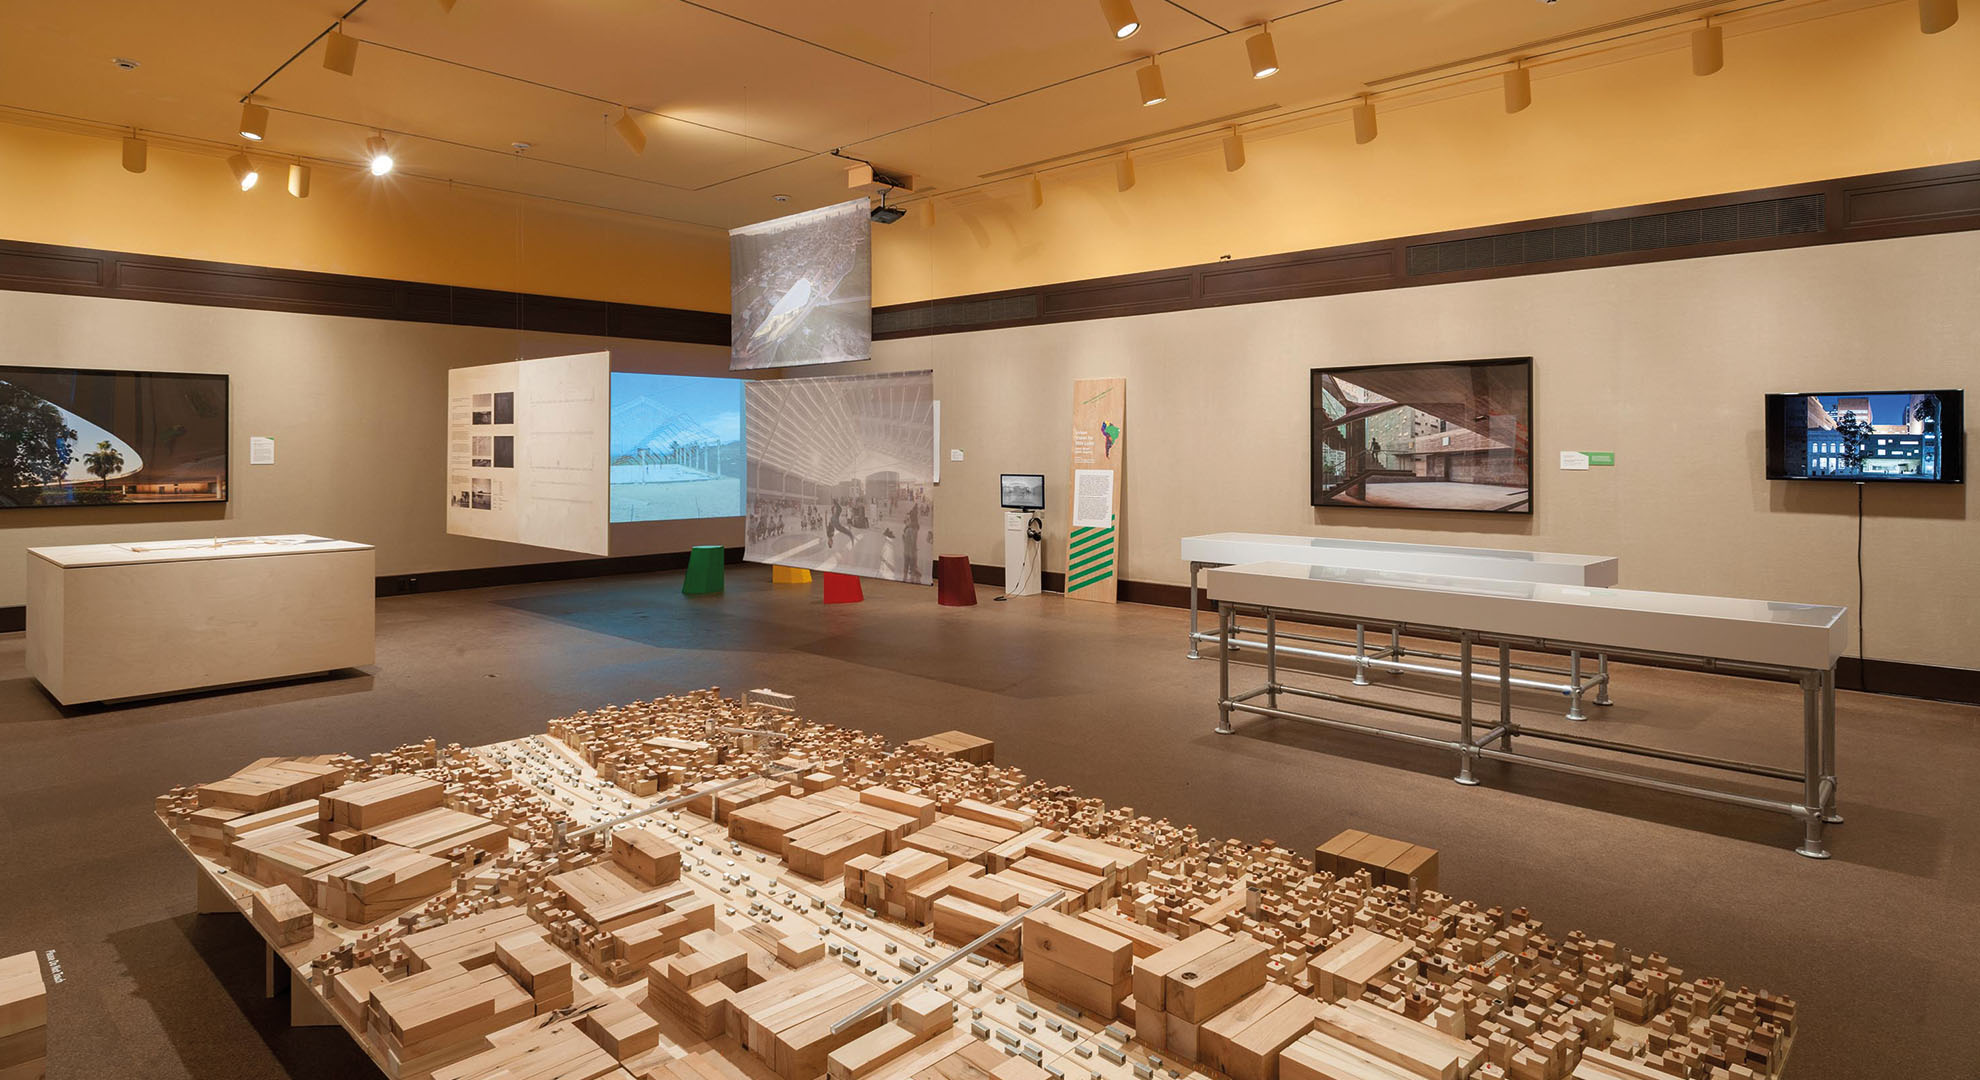 An installation in an architecture exhibition in Pennsylvania.